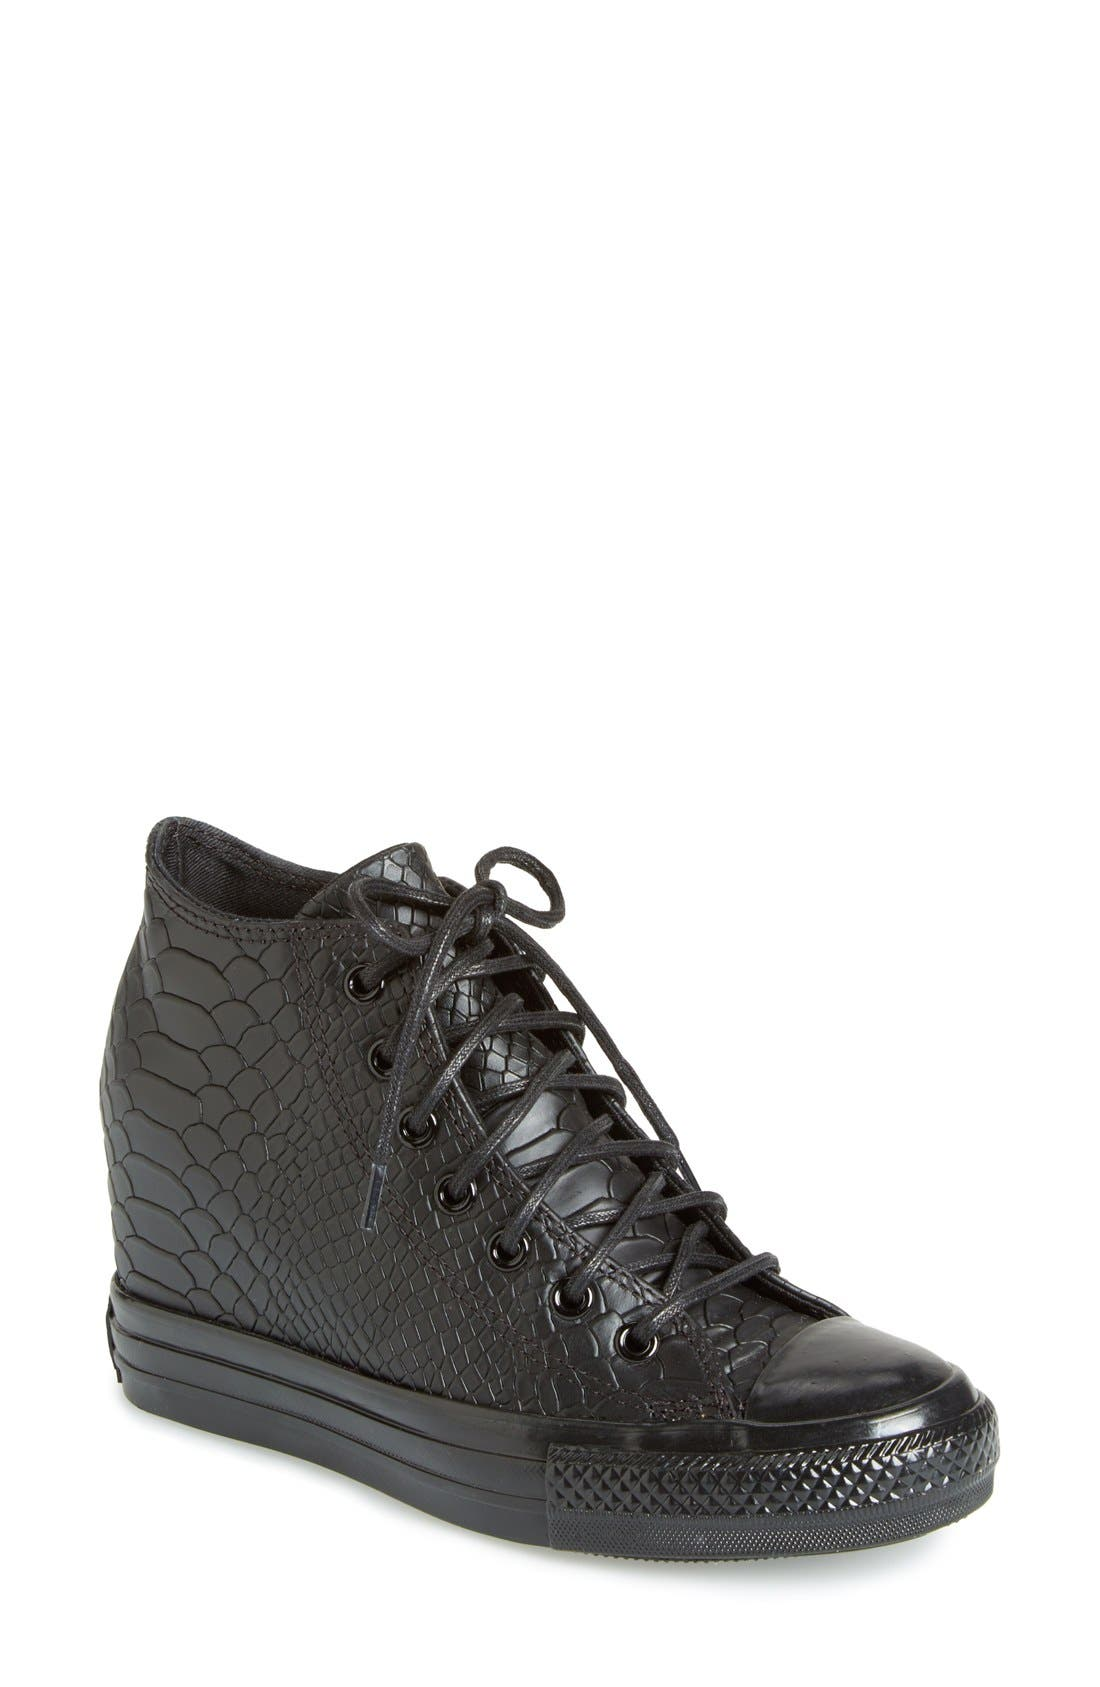 Chuck Taylor<sup>®</sup> All Star<sup>®</sup> 'Embossed Reptile' Wedge Sneaker, Main, color, 001